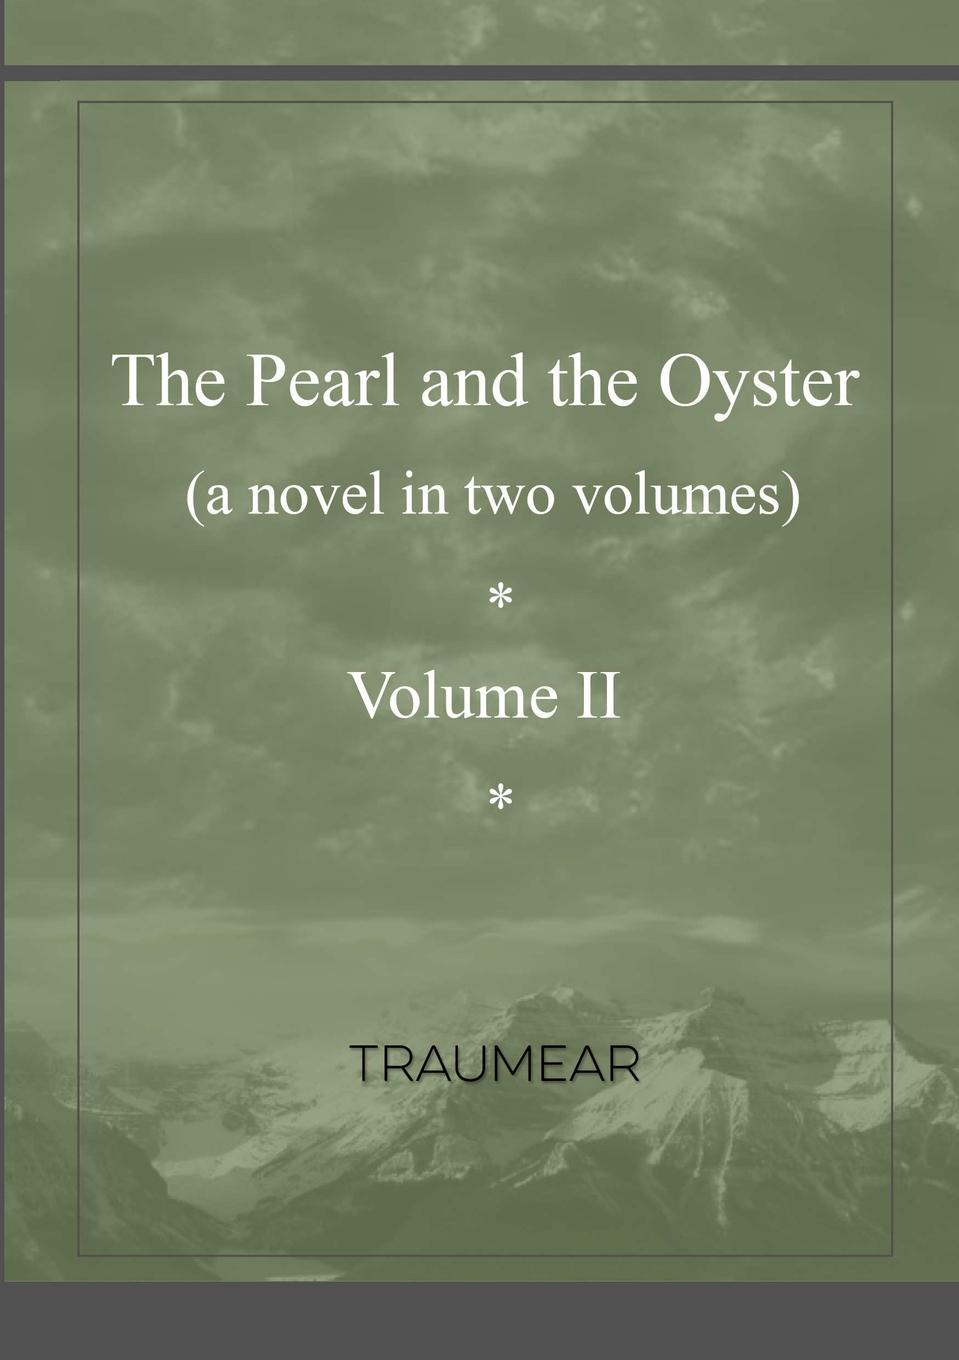 Traumear The Pearl and the Oyster Volume II